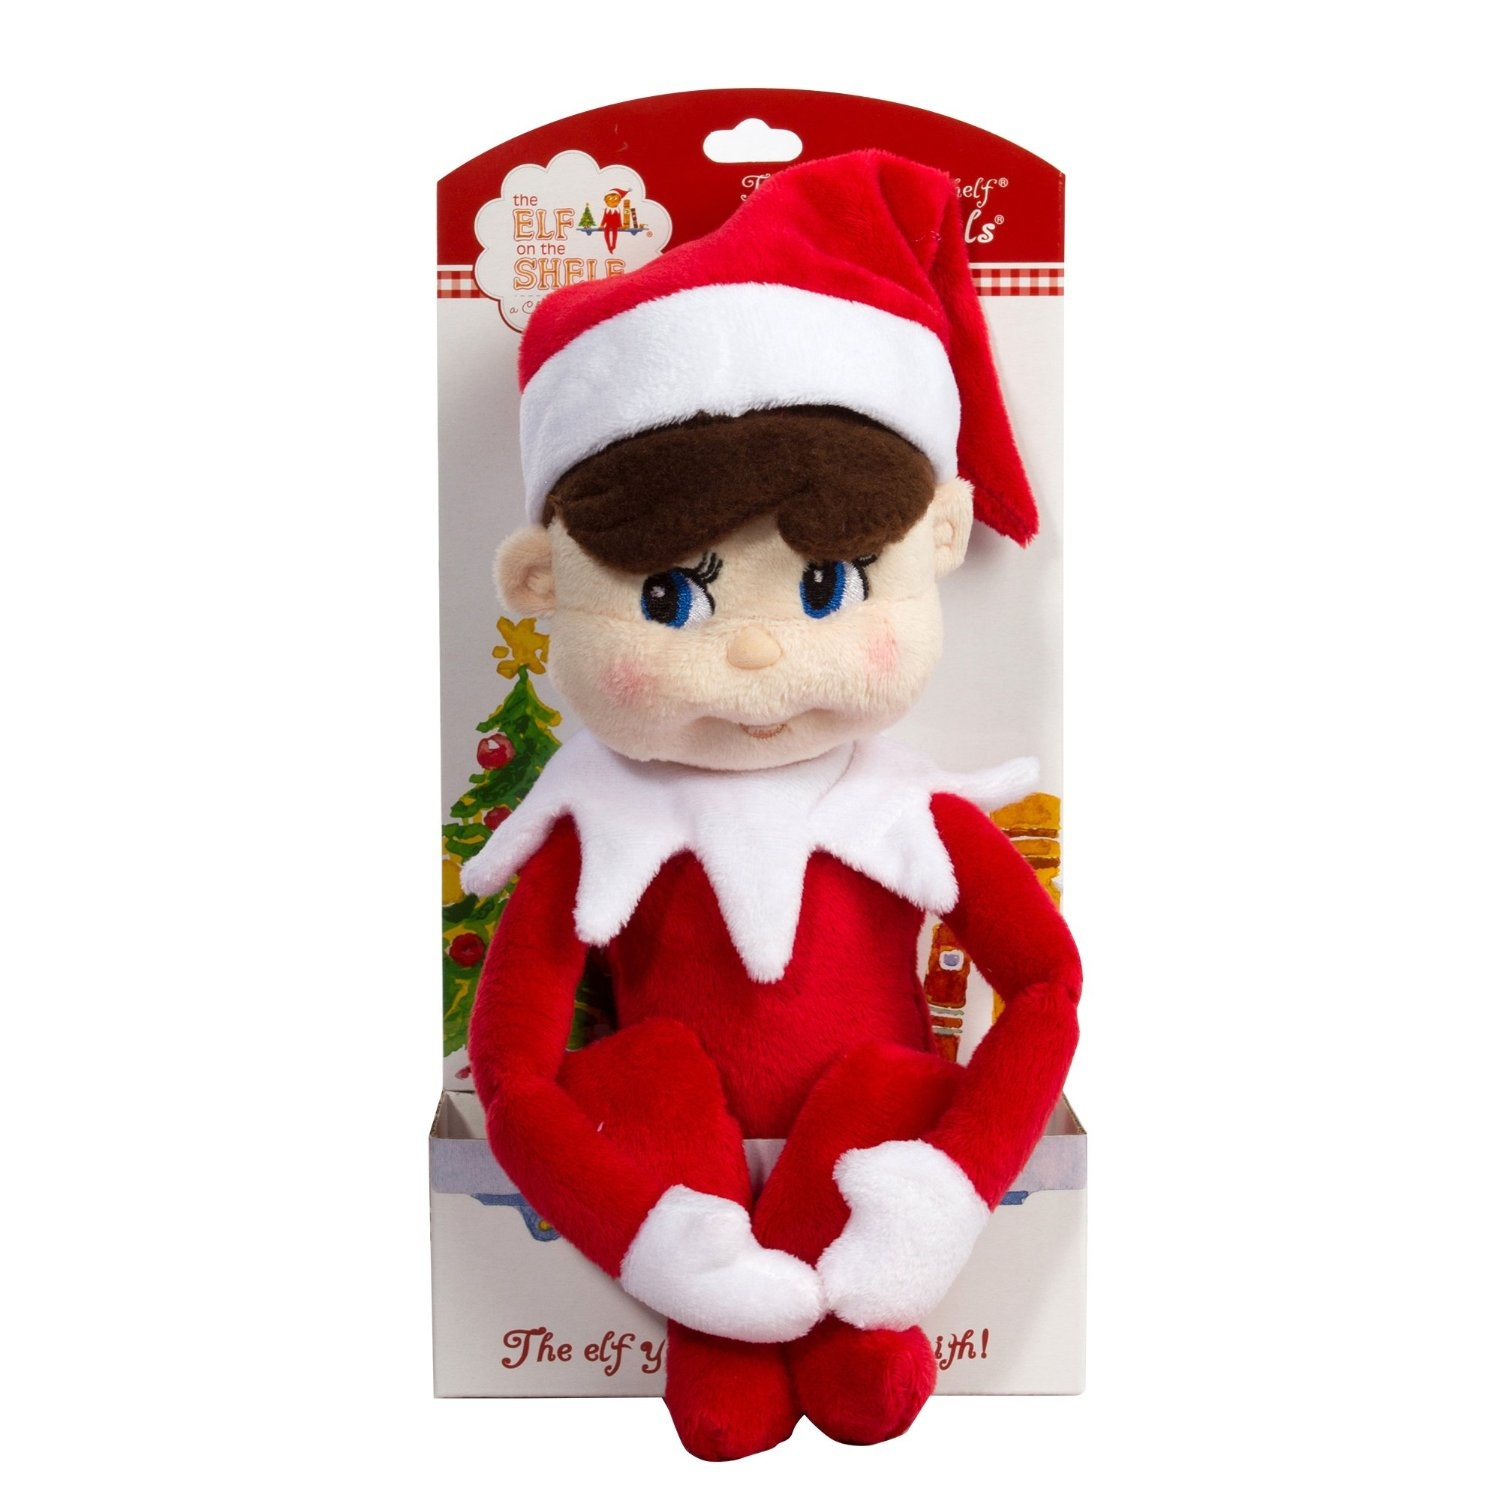 The Elf on the Shelf: A Christmas Tradition Elf on the Shelf Gift Set - Light Skinned Boy by Carol V. Abersold and Chanda A. Bell, ISBN: 9780976990741